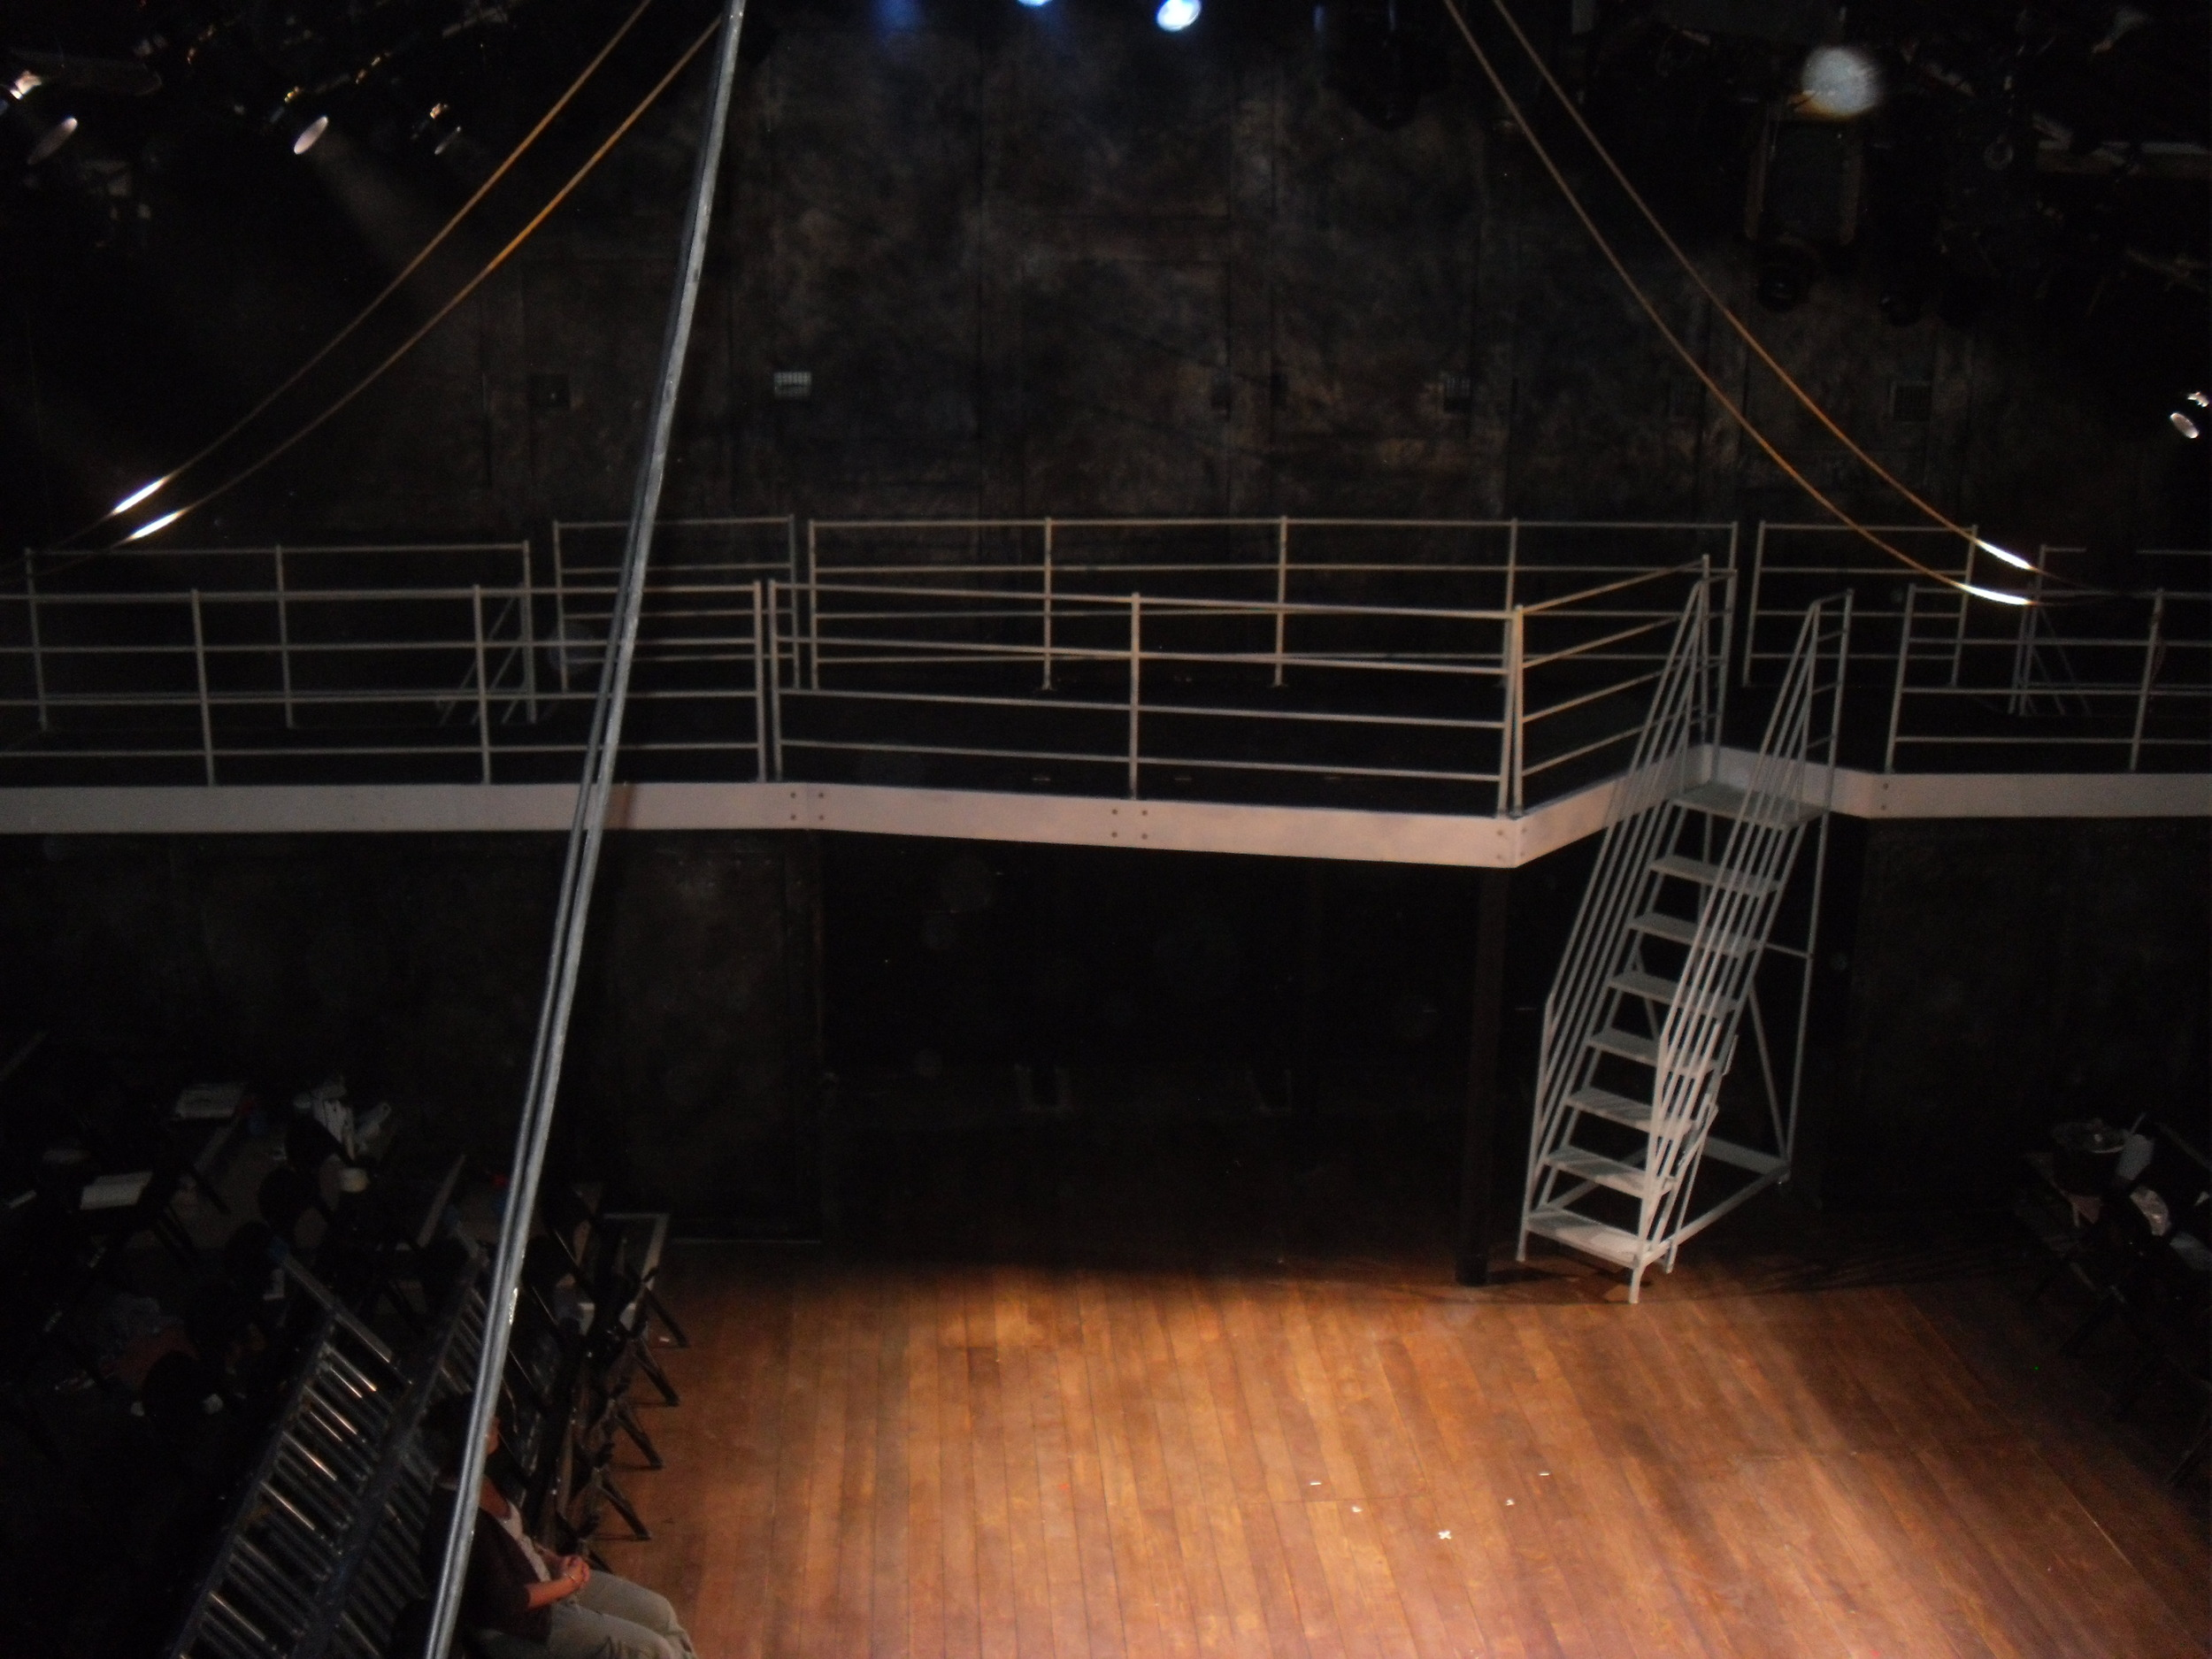 Titanic - Southwark Playhouse